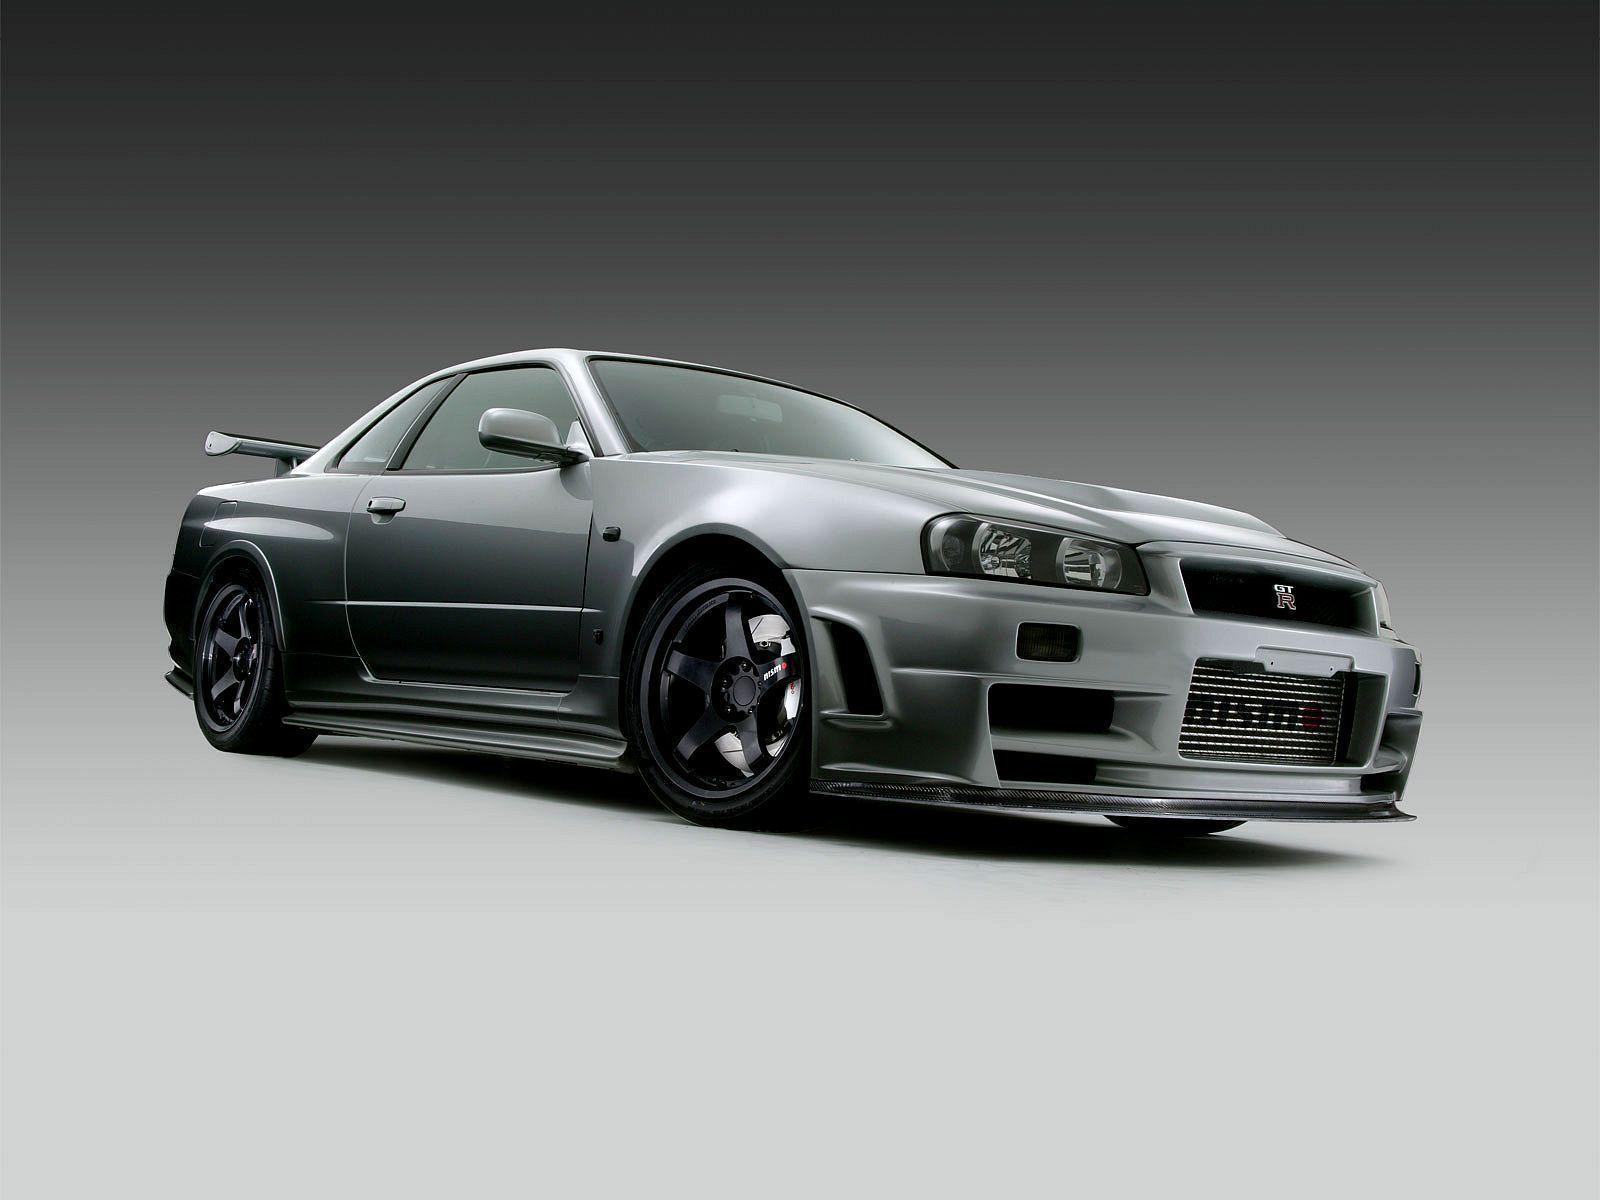 Nissan Skyline R34 Nismo Wallpapers 1600x1200